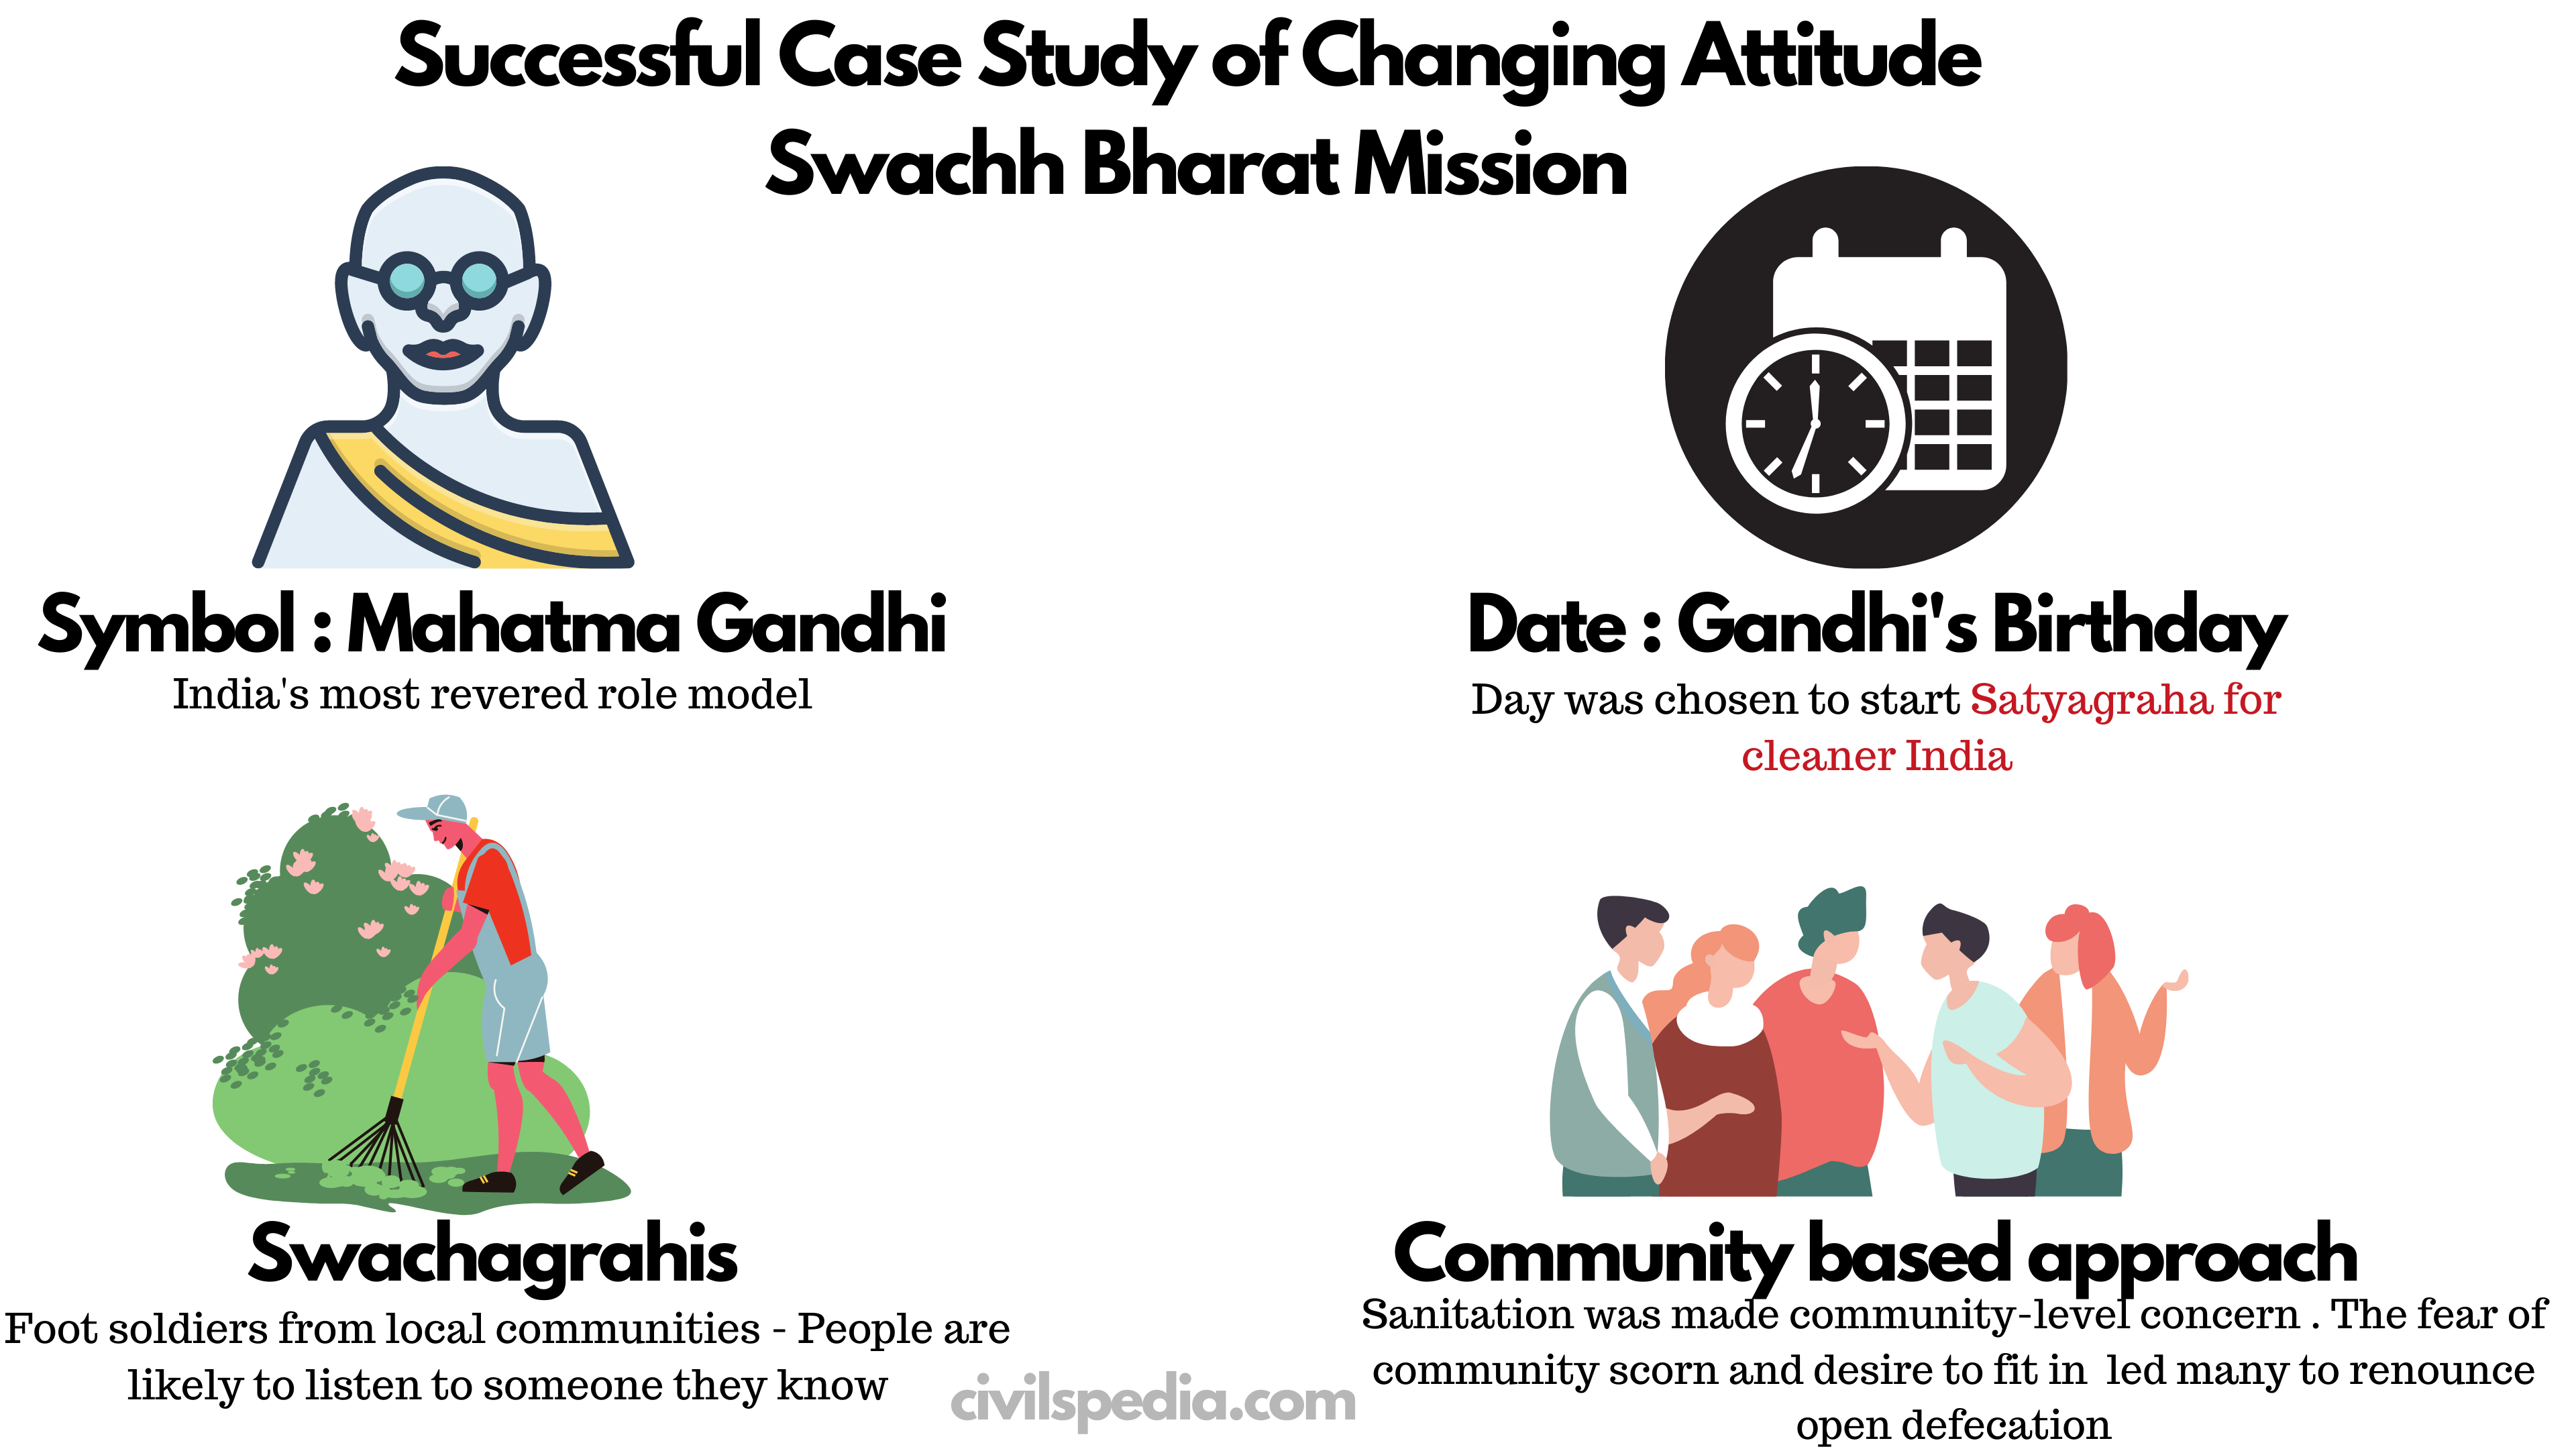 Successful Case Study of Changing Attitude : Swachh Bharat Mission